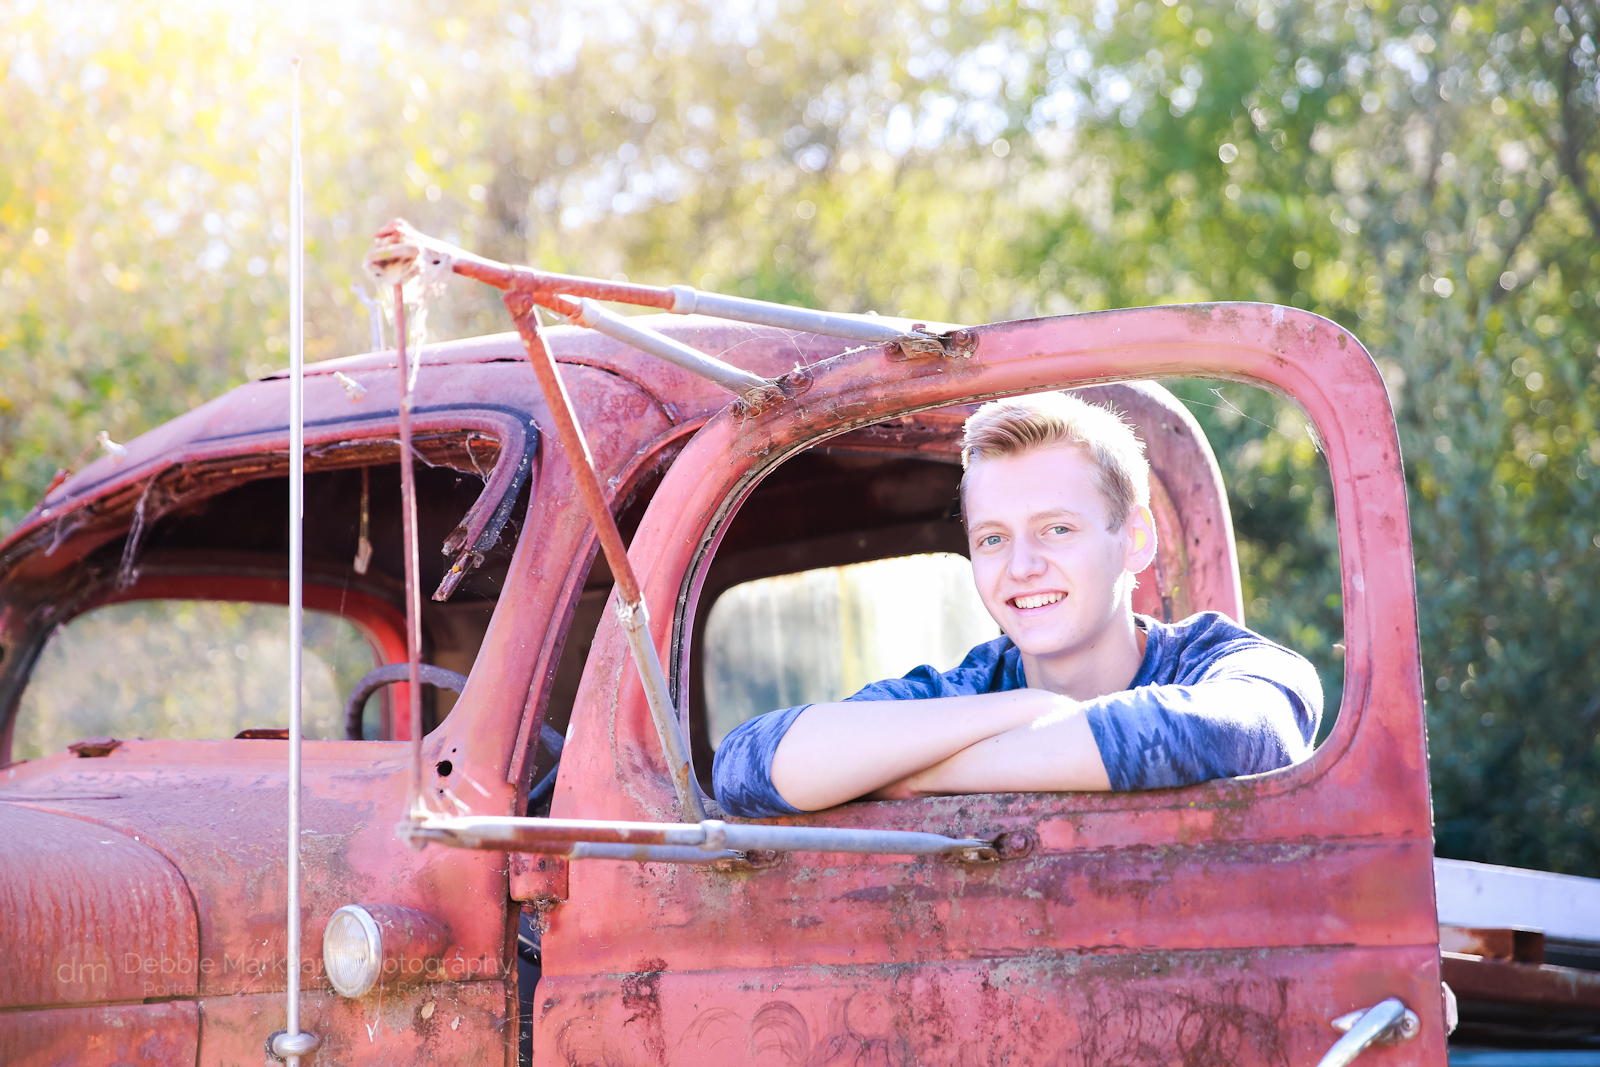 high-school_senior-portrait_boy-pose_outdoor_photos_male-senior-portrait_cambria-photographer_debbie-markham-5544